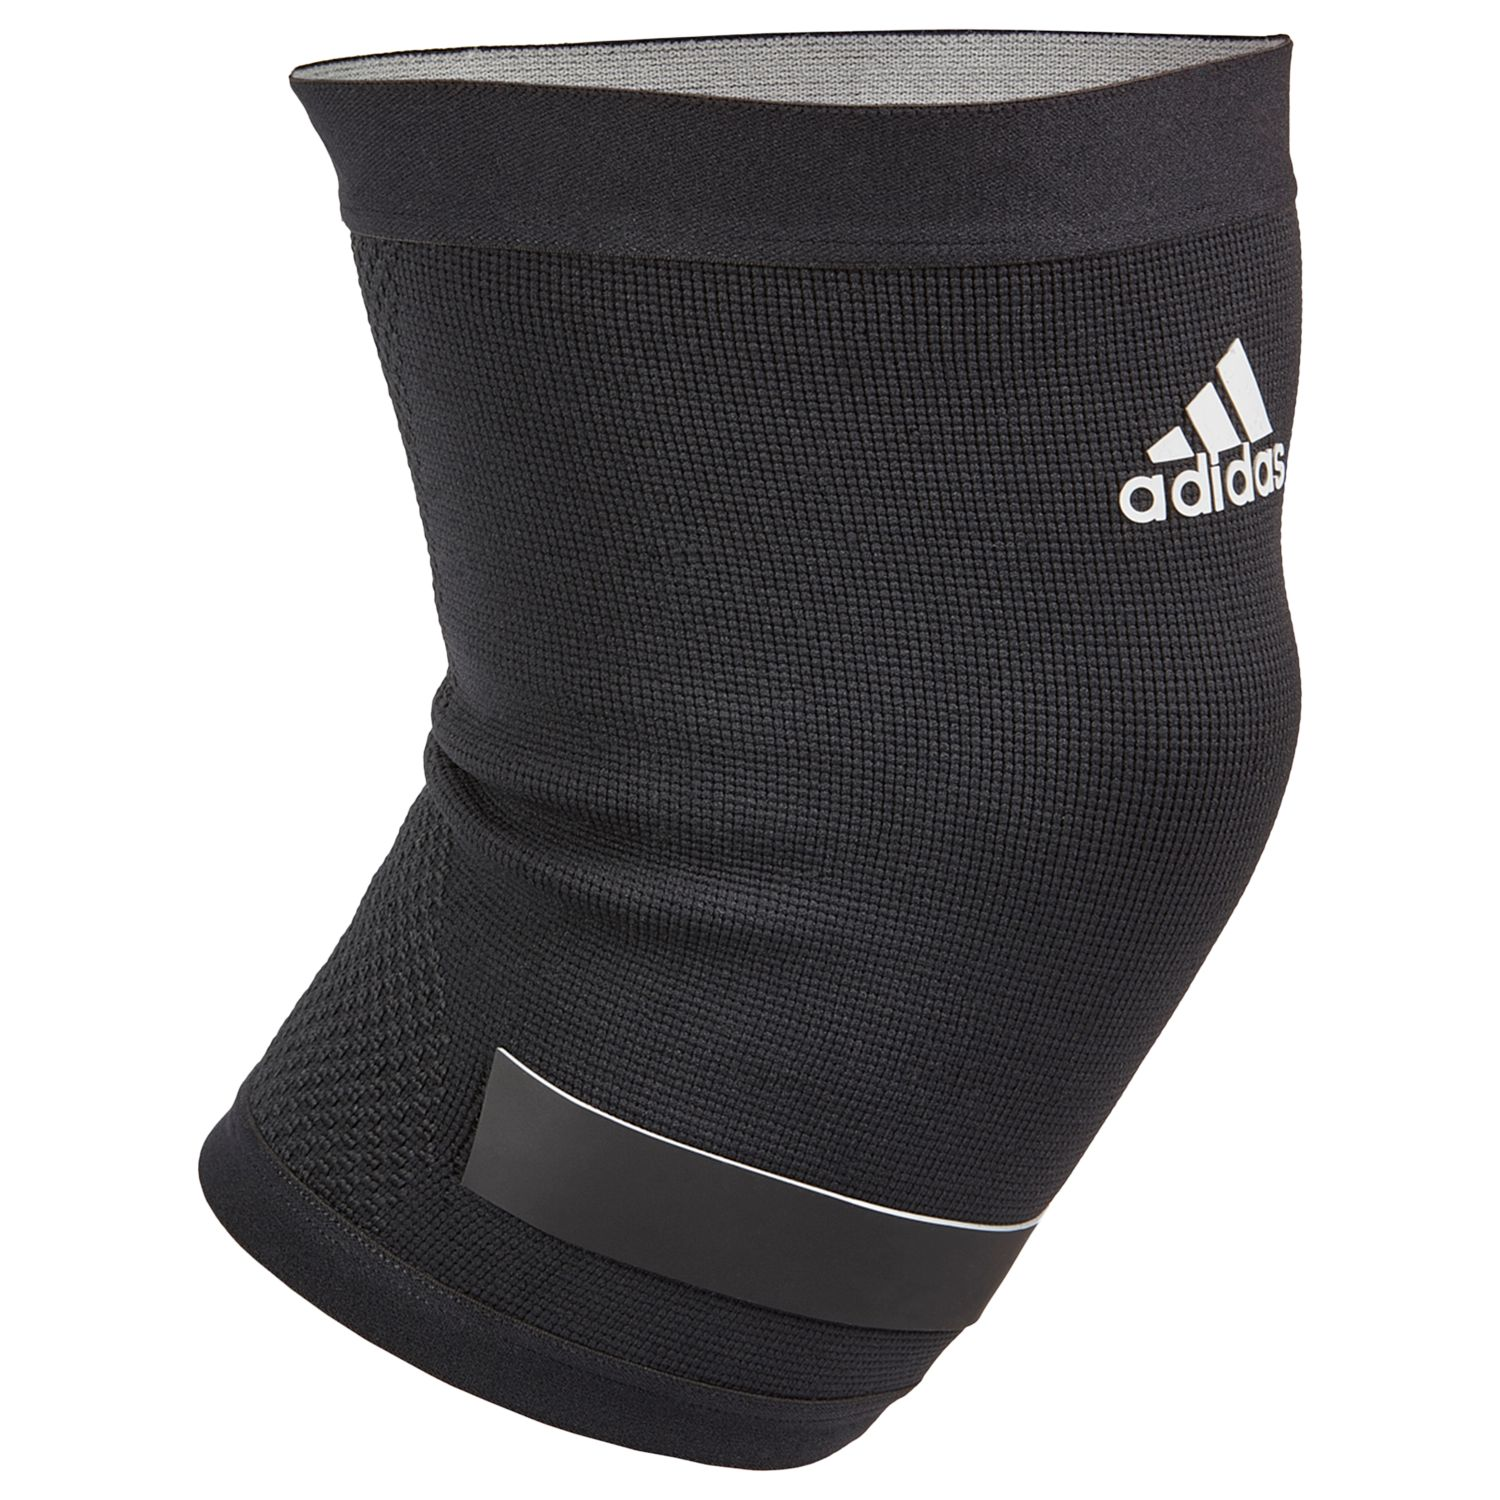 Adidas adidas Knee Support Brace, Black